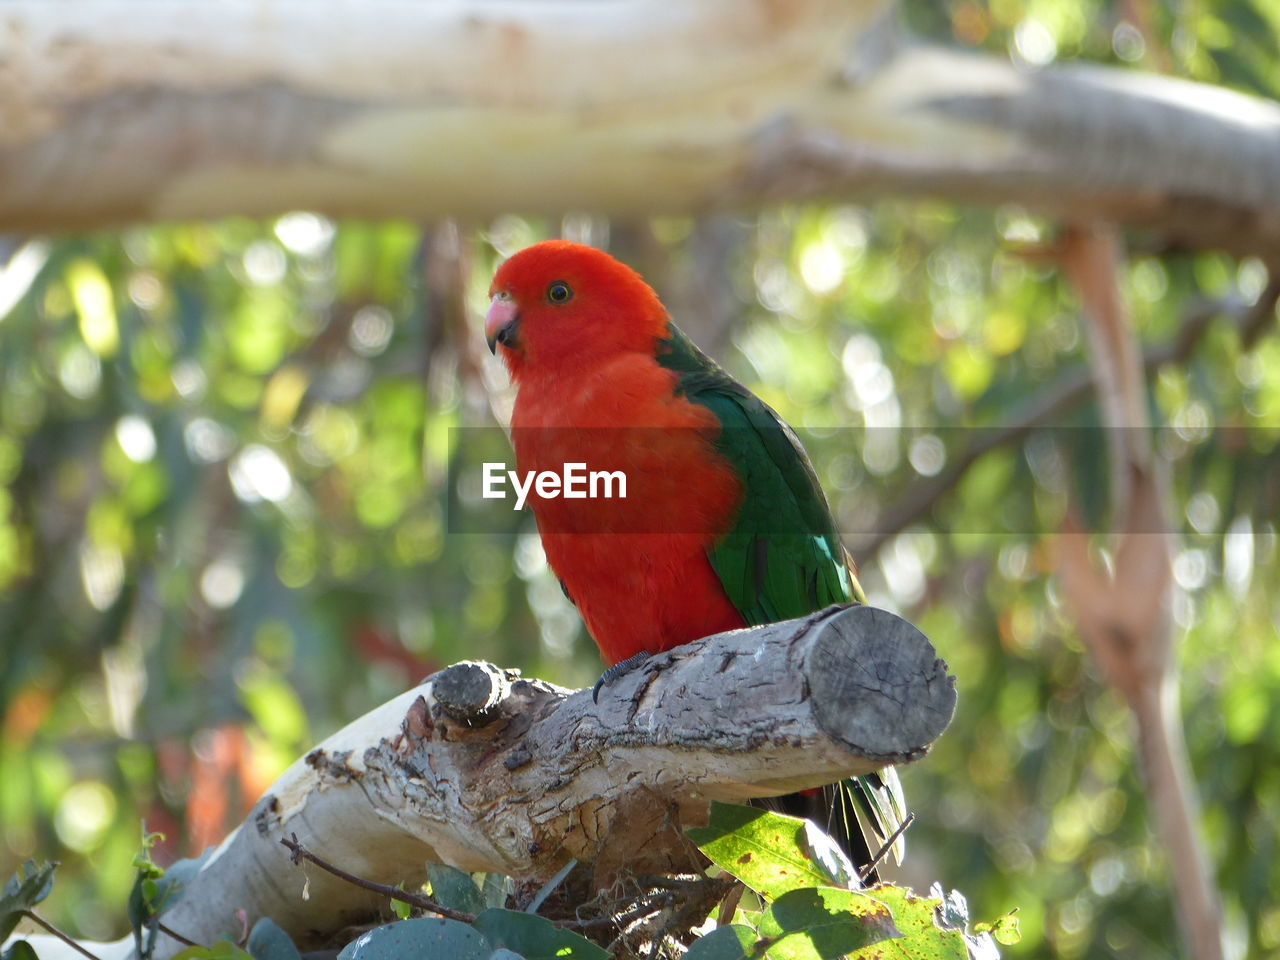 vertebrate, animal themes, animal, bird, perching, animal wildlife, animals in the wild, tree, parrot, one animal, focus on foreground, branch, day, plant, no people, nature, outdoors, red, full length, close-up, rainbow lorikeet